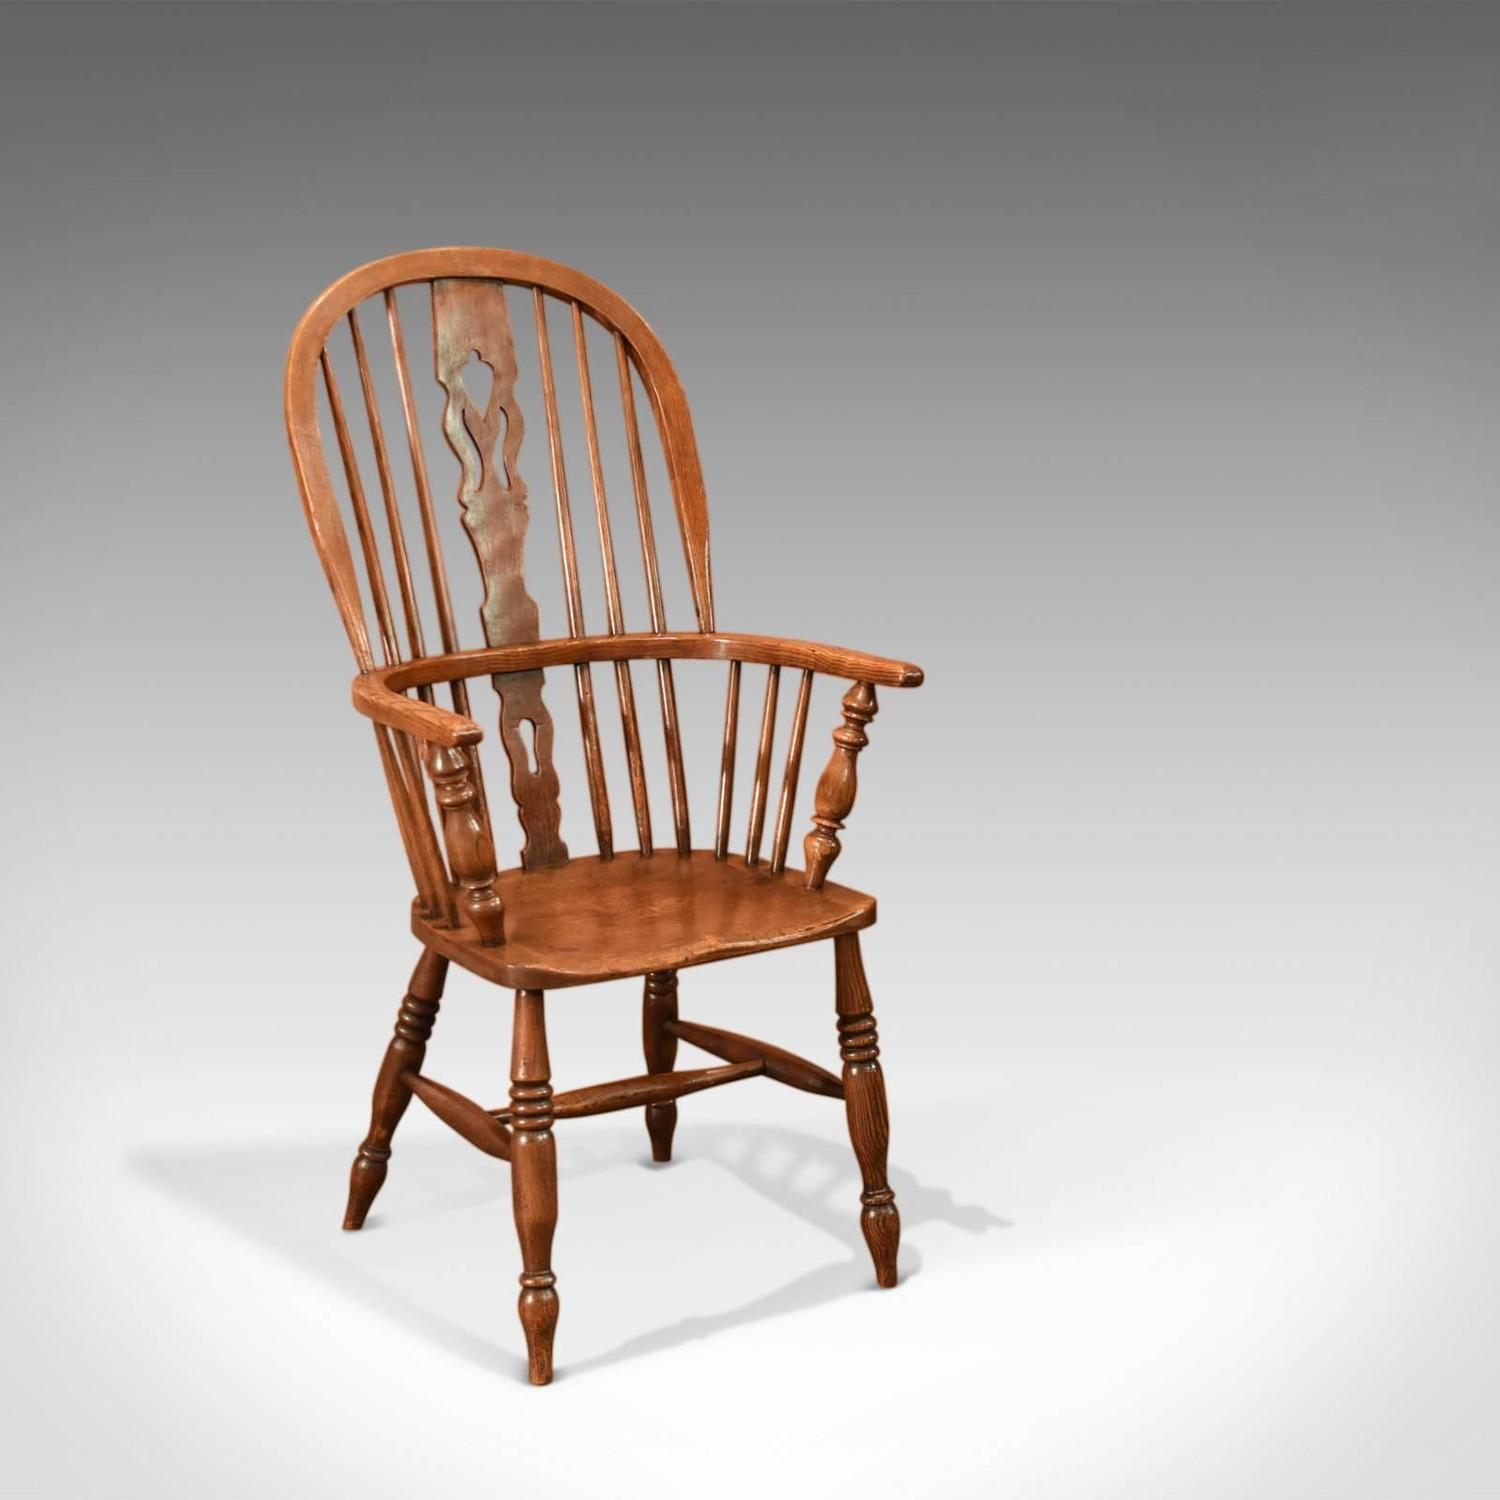 Antique Windsor Stick Back Chair Victorian circa 1870 For Sale at 1stdibs & Antique Windsor Stick Back Chair Victorian circa 1870 For Sale at ...